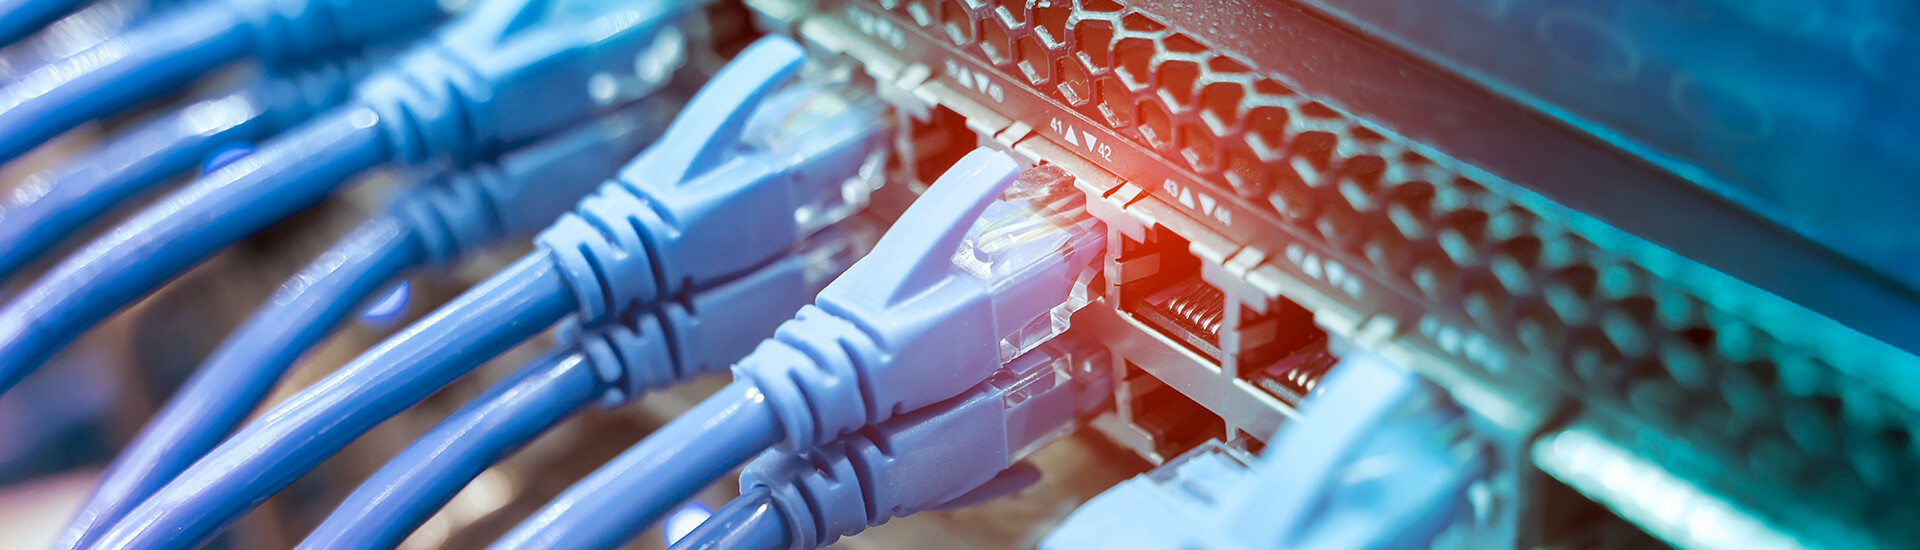 IT Service - Networking - 1